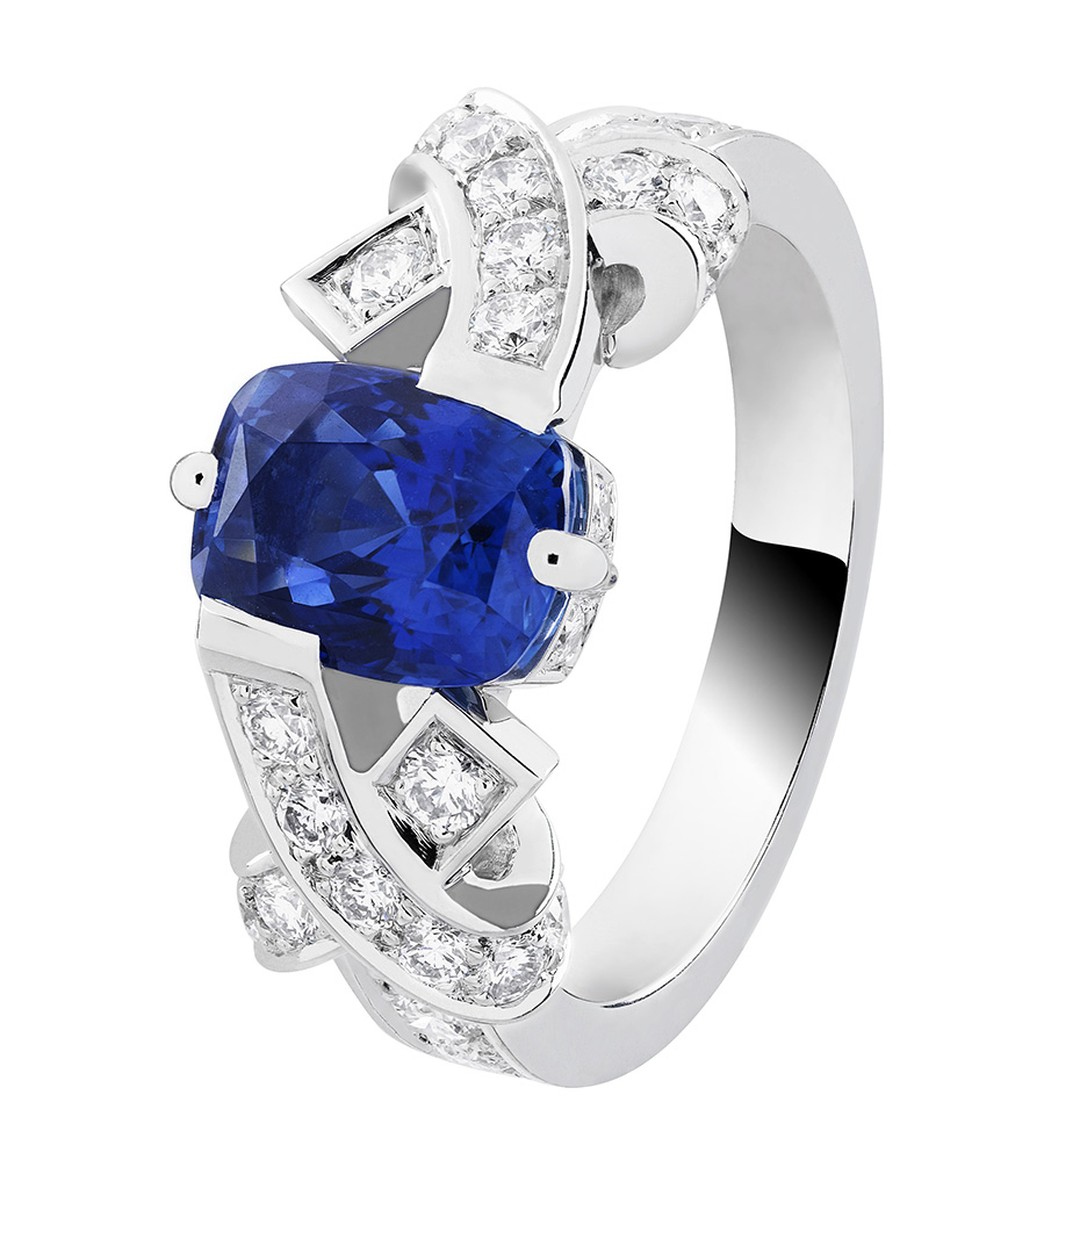 Van Cleef & Arpels Entrelacs solitaire engagement ring in platinum, set with a 2.28ct cushion-cut sapphire and diamonds